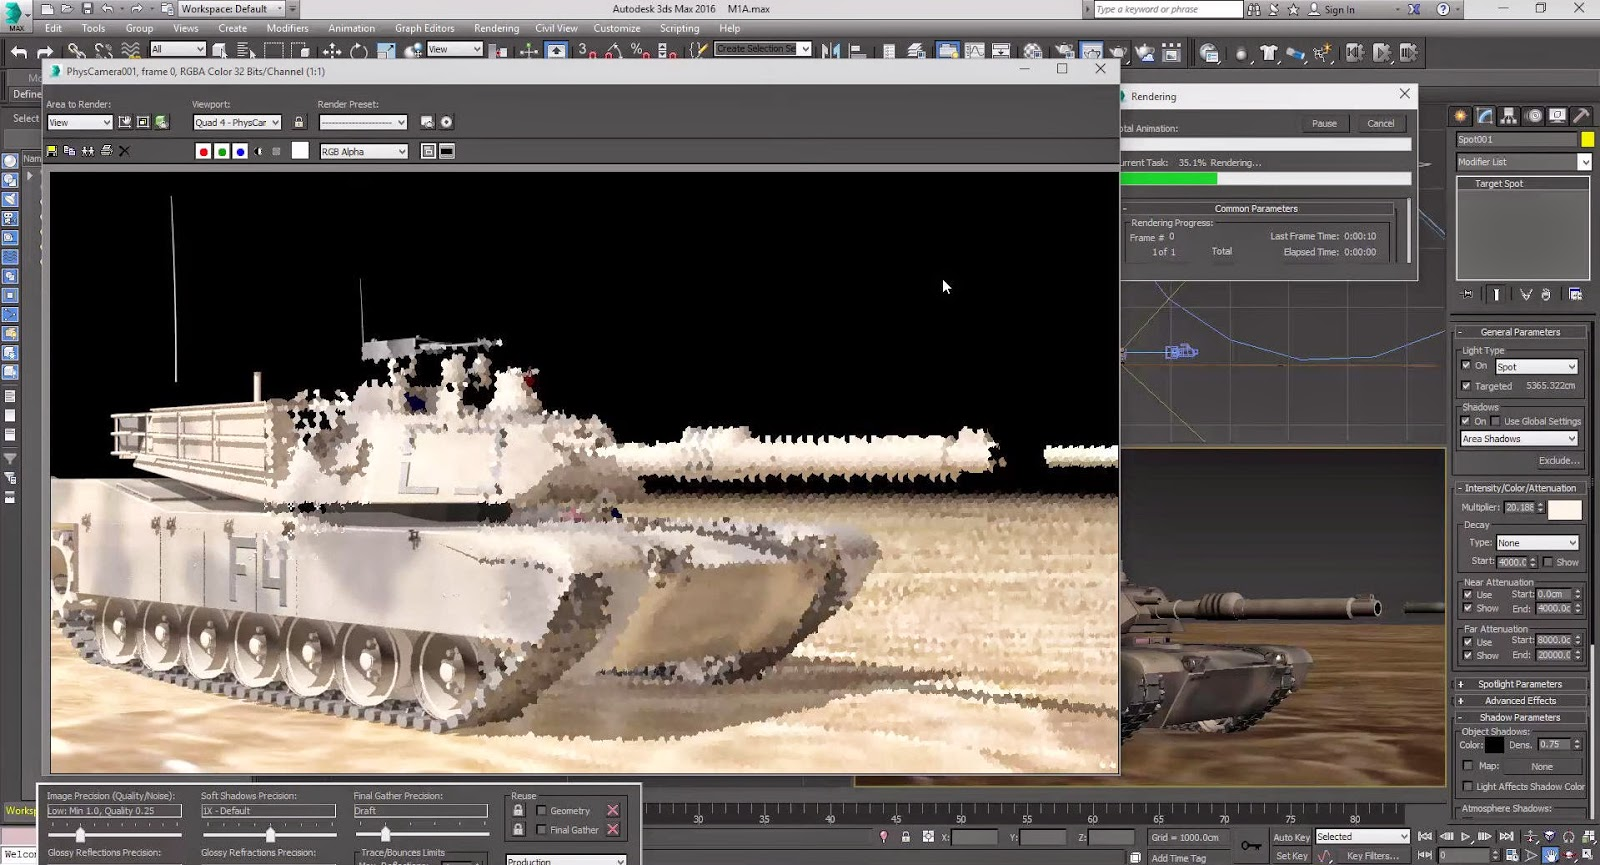 New physical camera in Autodesk 3ds Max 2016 | Computer Graphics